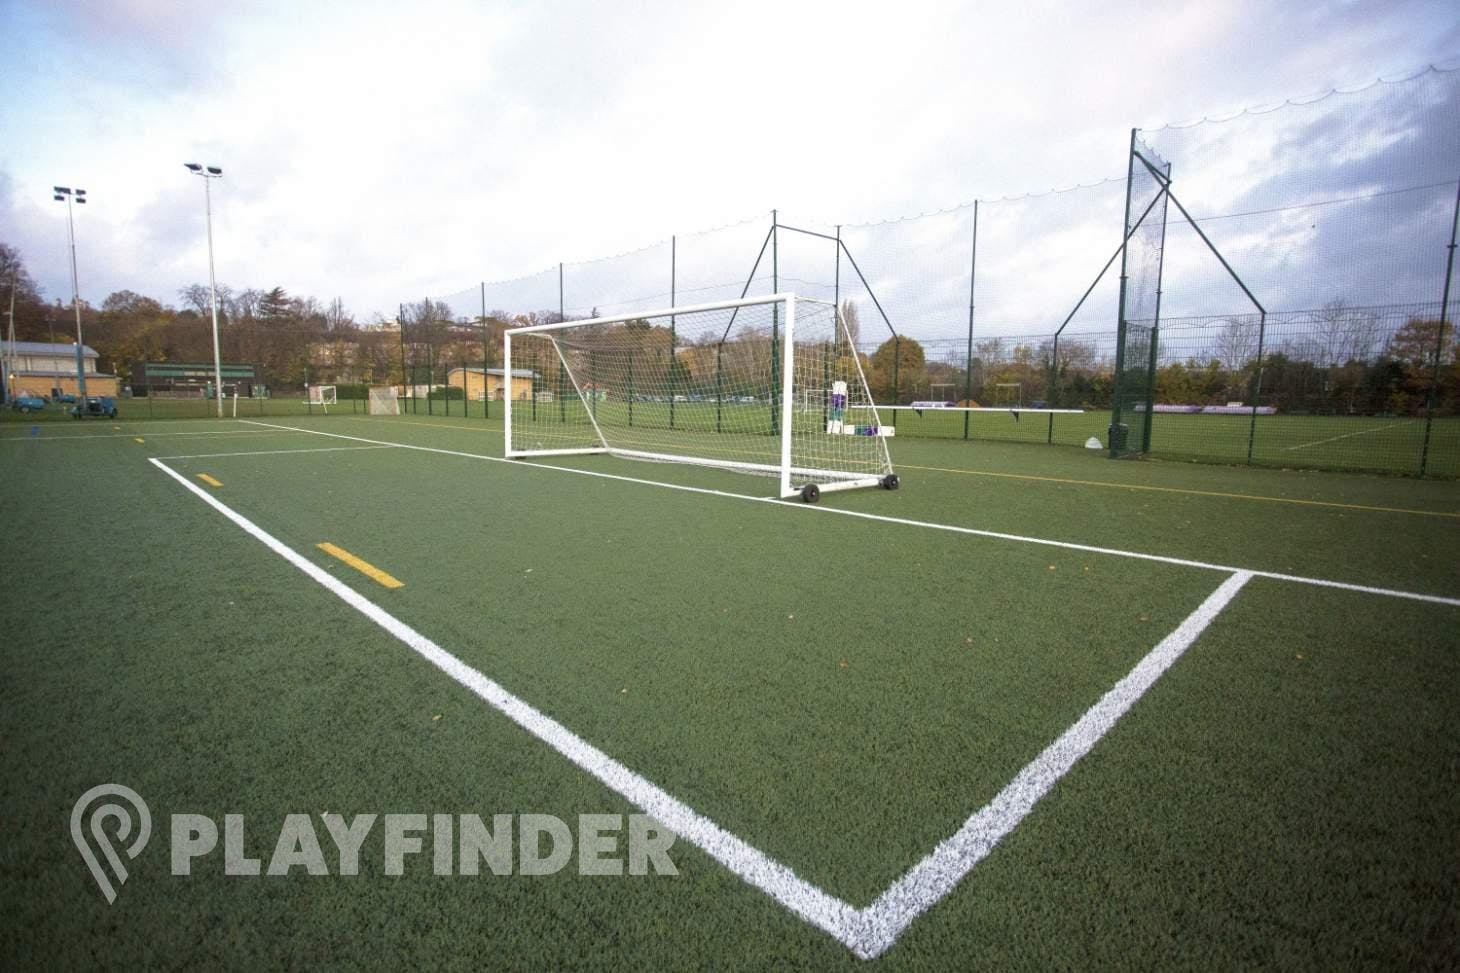 Royal Holloway University Sports Centre 7 a side | 3G Astroturf football pitch